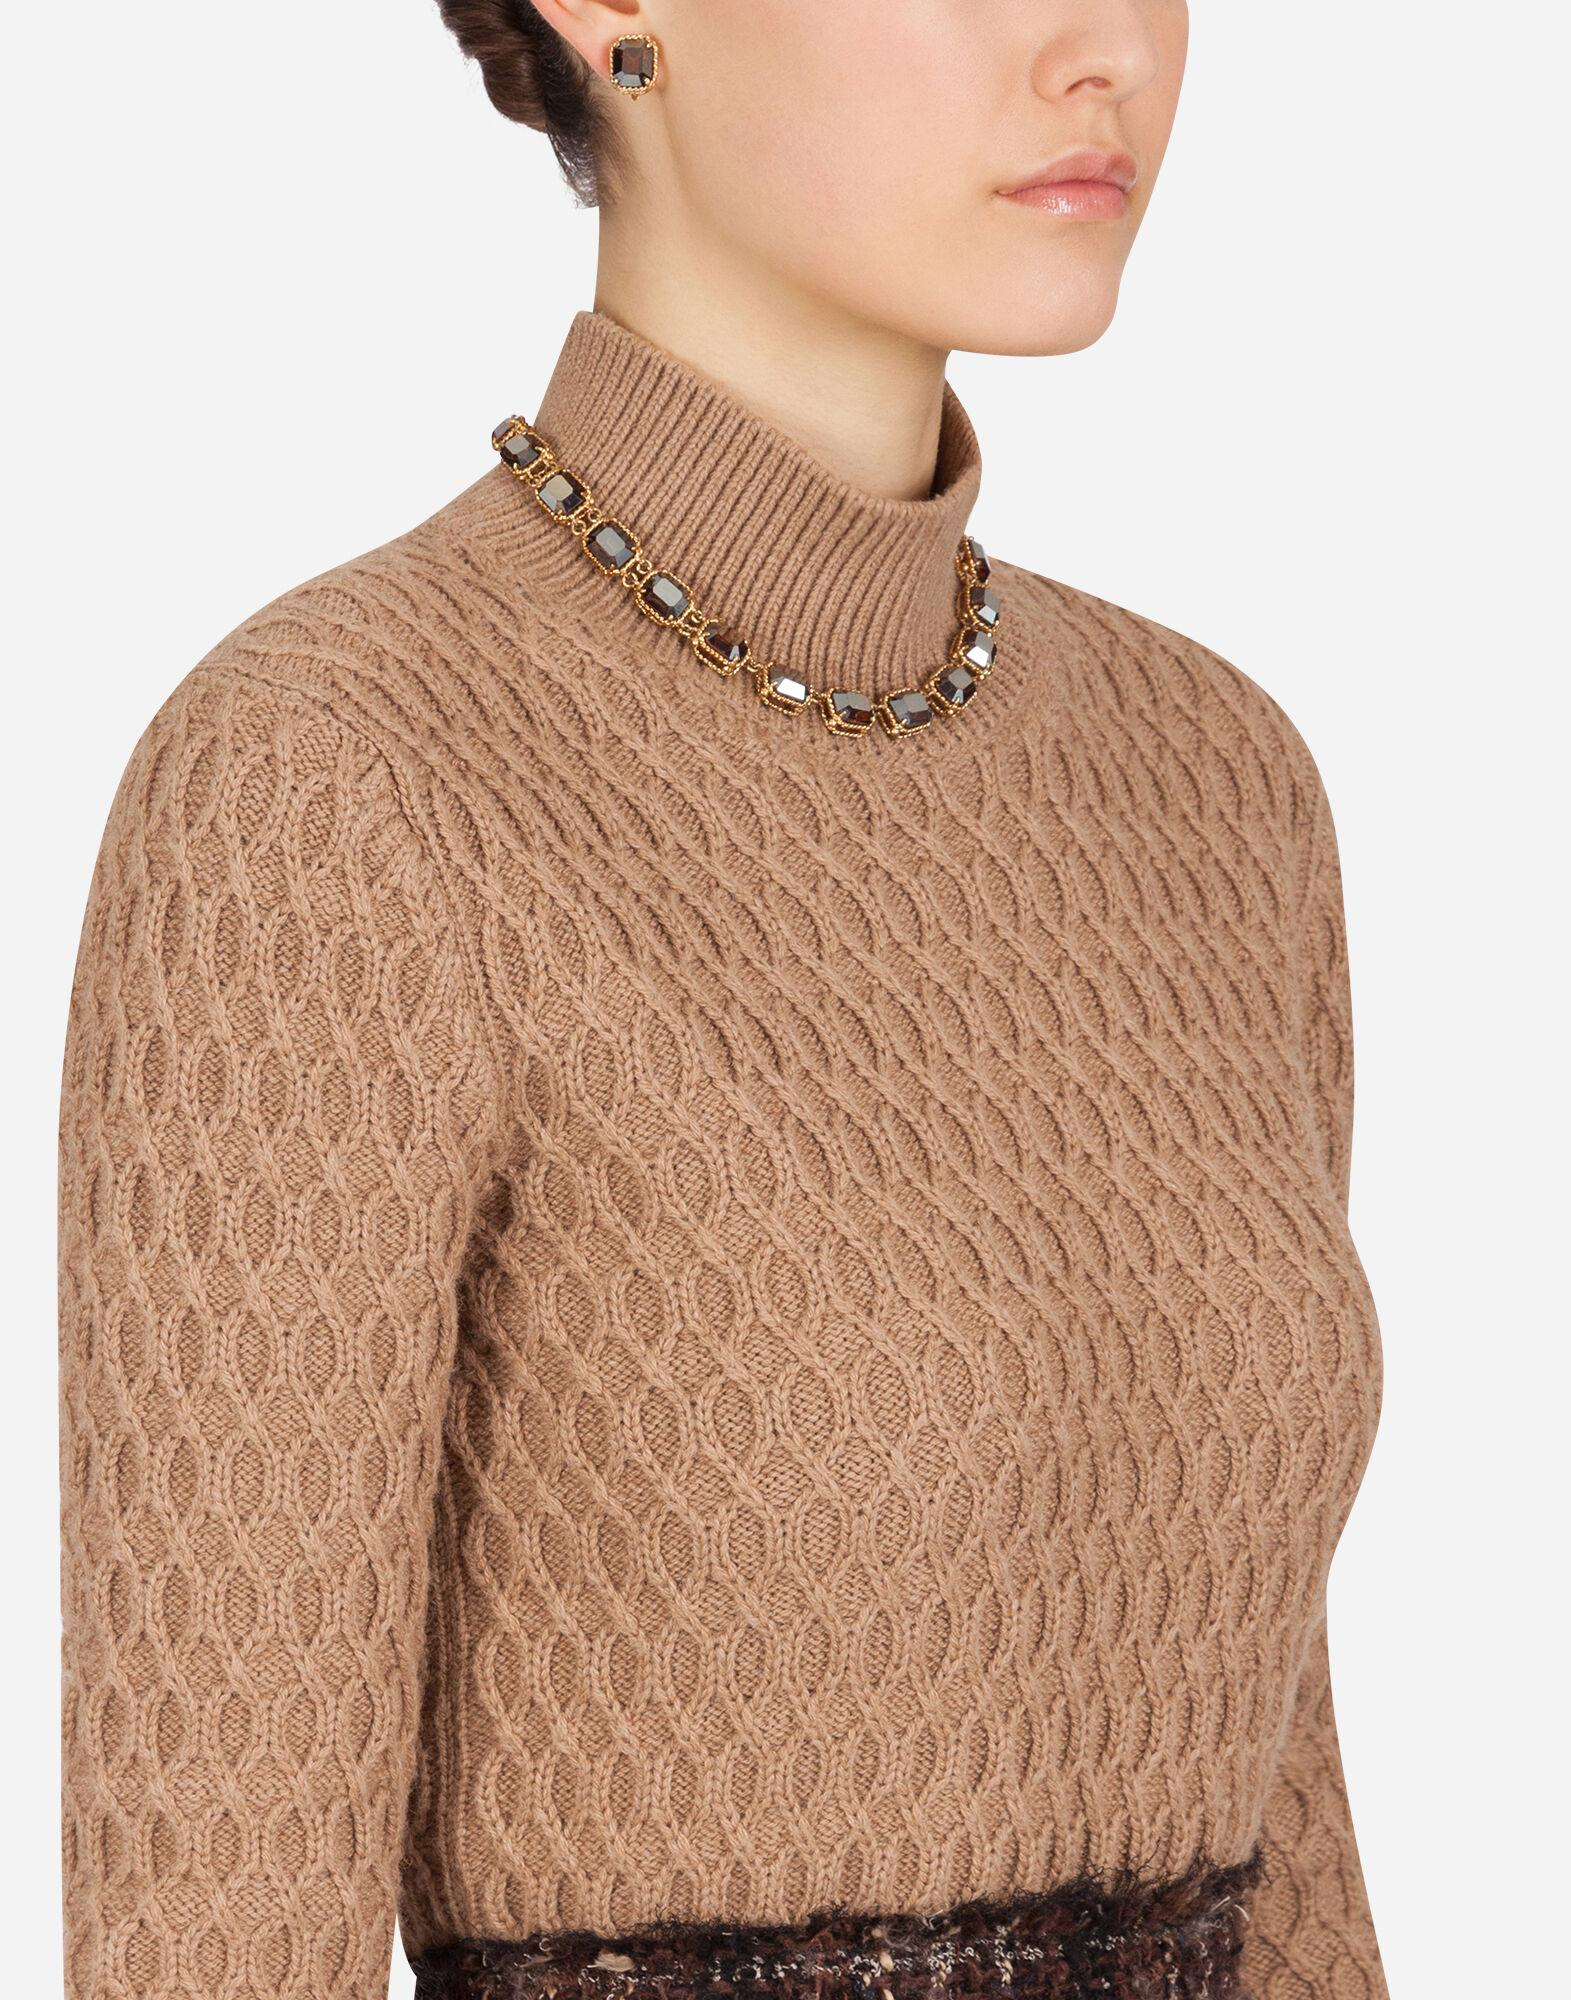 High-neck sweater in camel with rhombus stitch 2